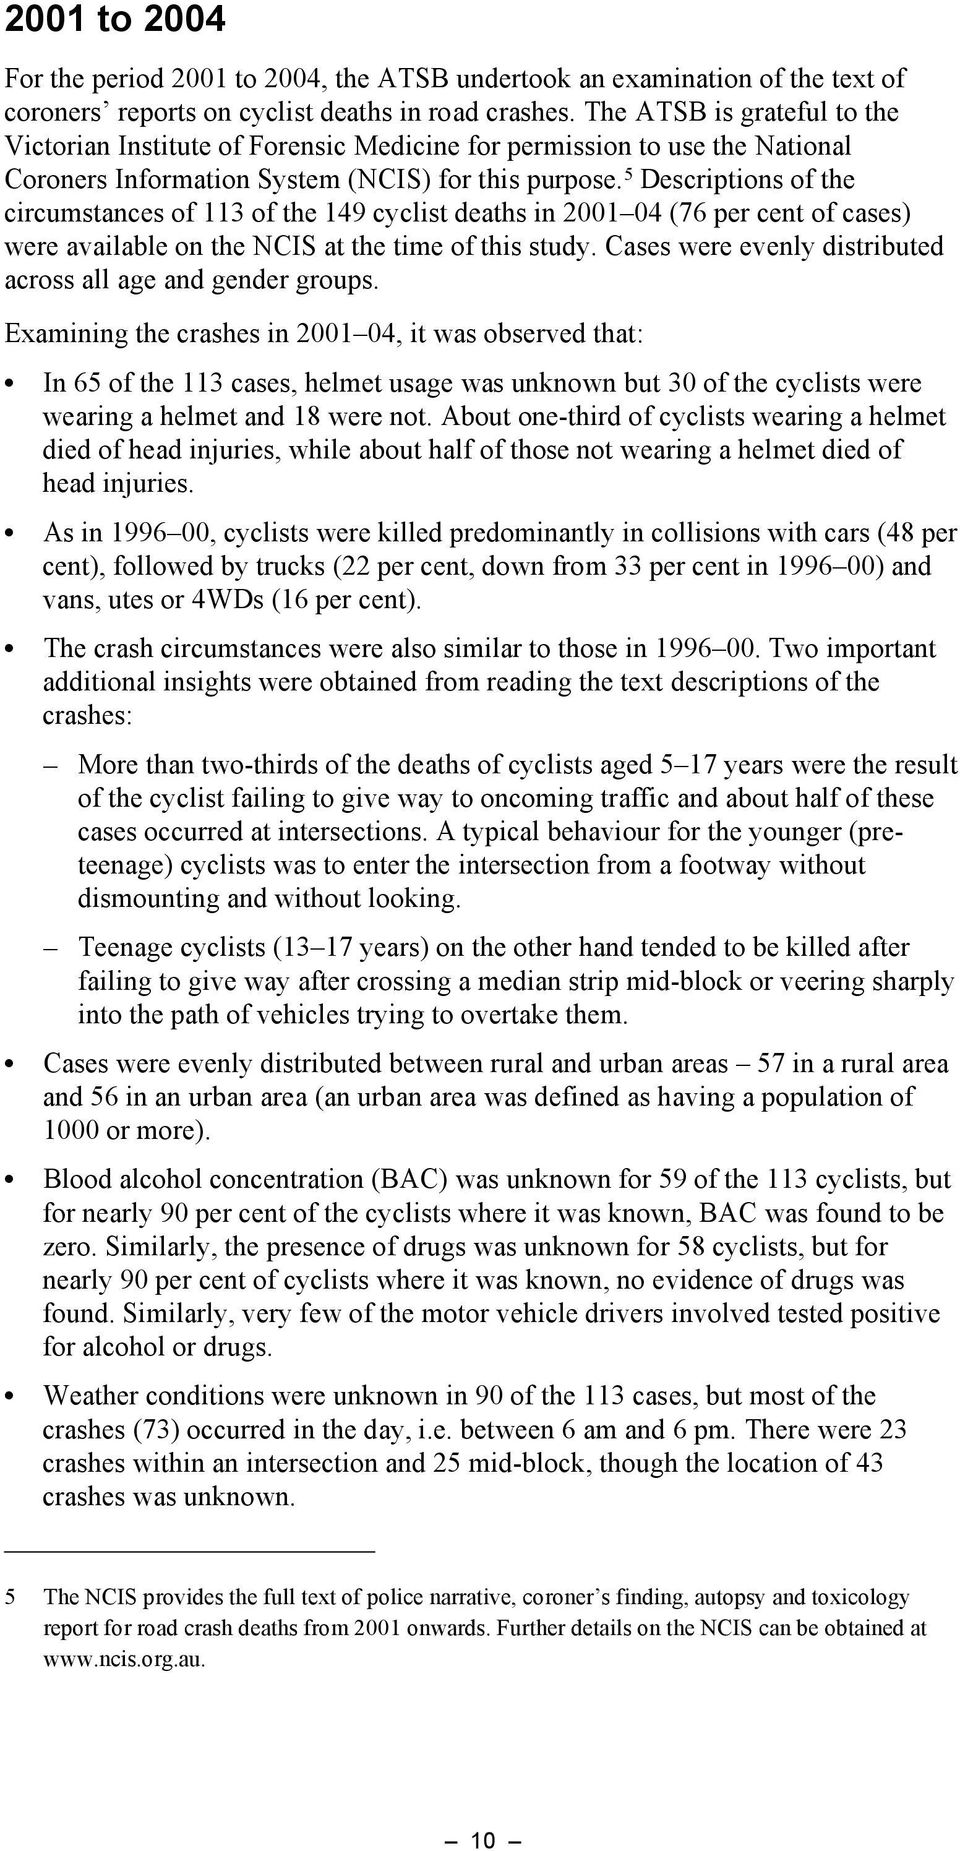 5 Descriptions of the circumstances of 113 of the 149 cyclist deaths in 2001 04 (76 per cent of cases) were available on the NCIS at the time of this study.